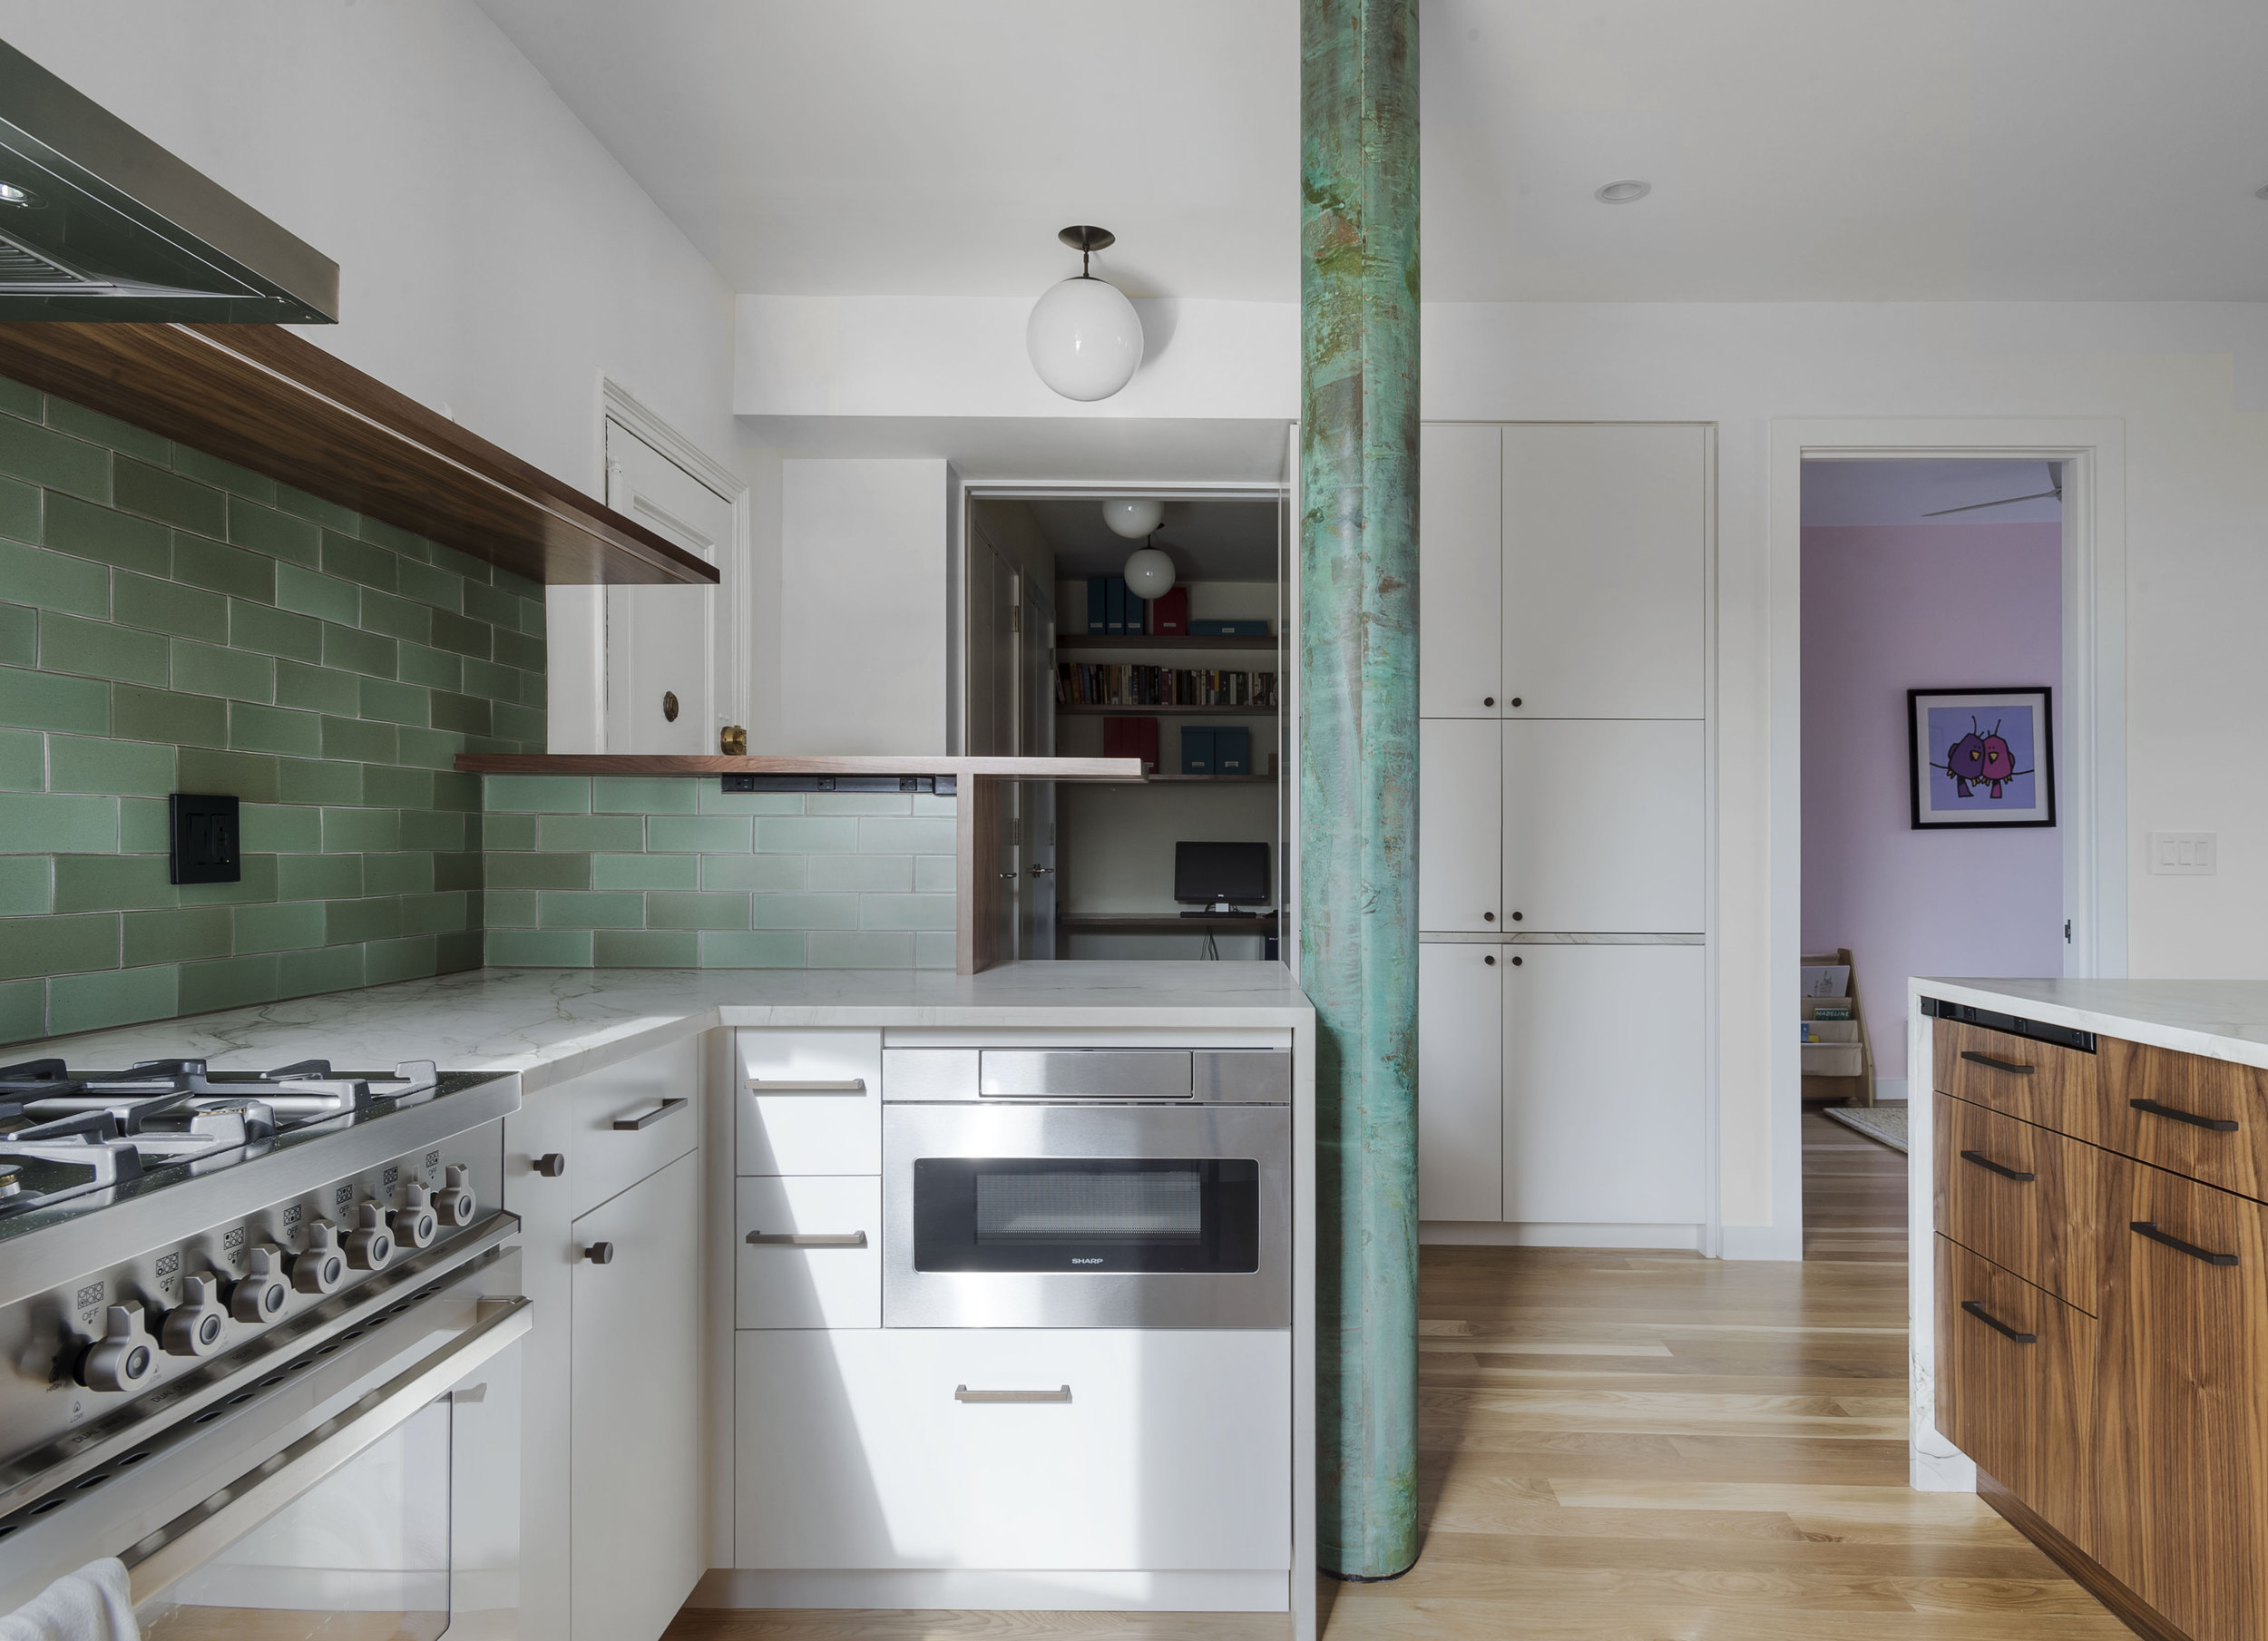 Patina  This apartment, in a landmarked, Art Deco building, in Park Slope, features a color palette inspired by the copper-wrapped storm drain, in the kitchen. This planning obstacle was transformed into an opportunity for a unique design feature of the apartment.